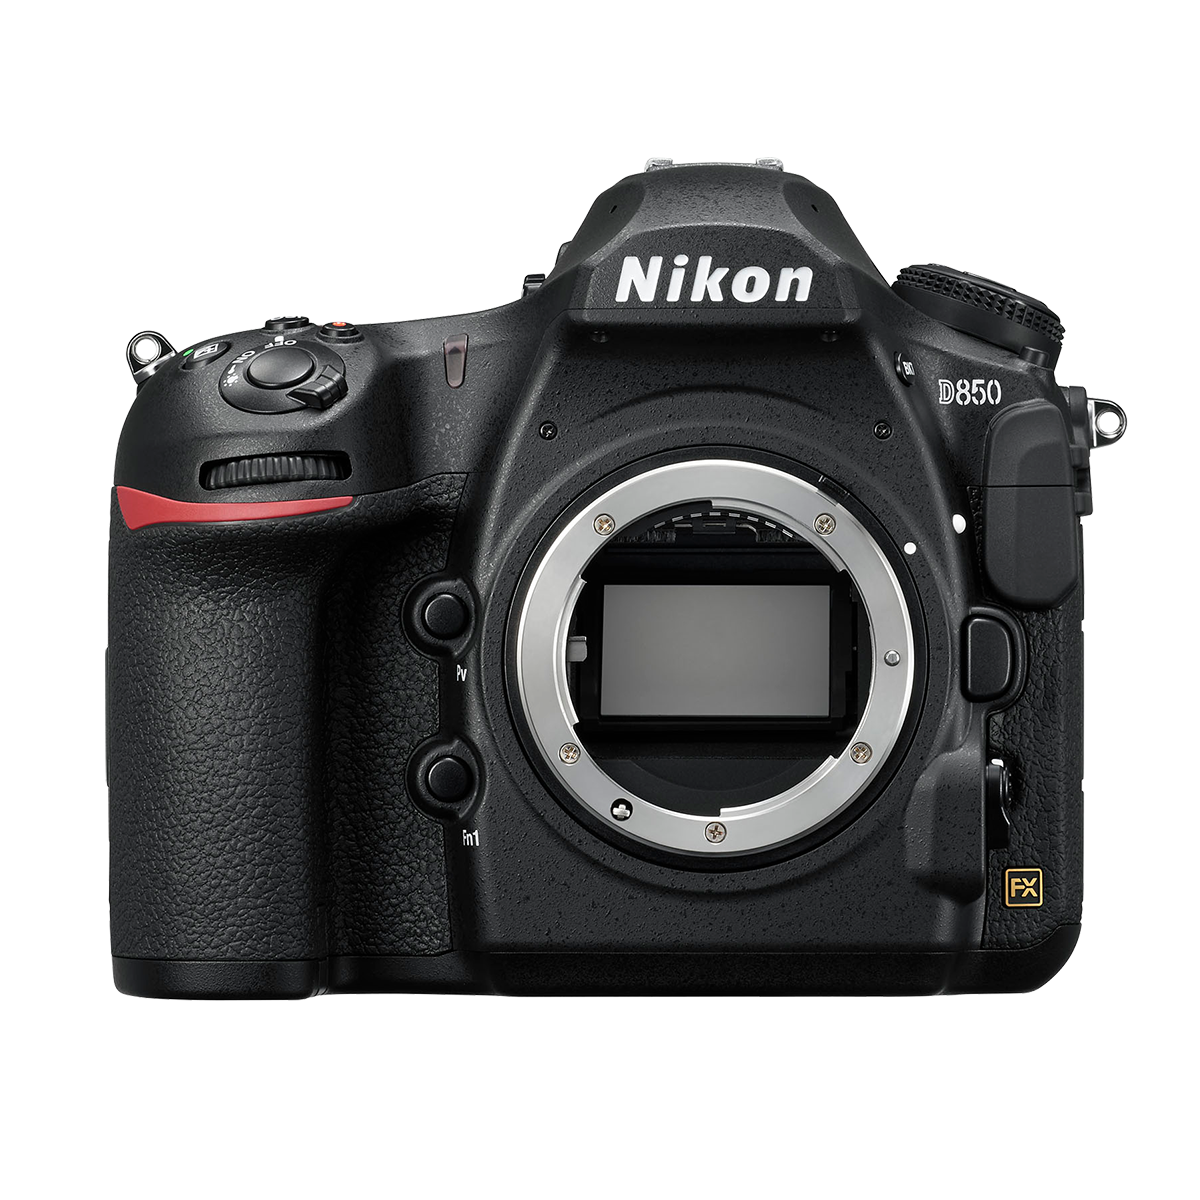 Nikon D850 Offers 45 7mp Bsi Fx Format Sensor 7 Fps Bursts 4k Video Digital Photography Review